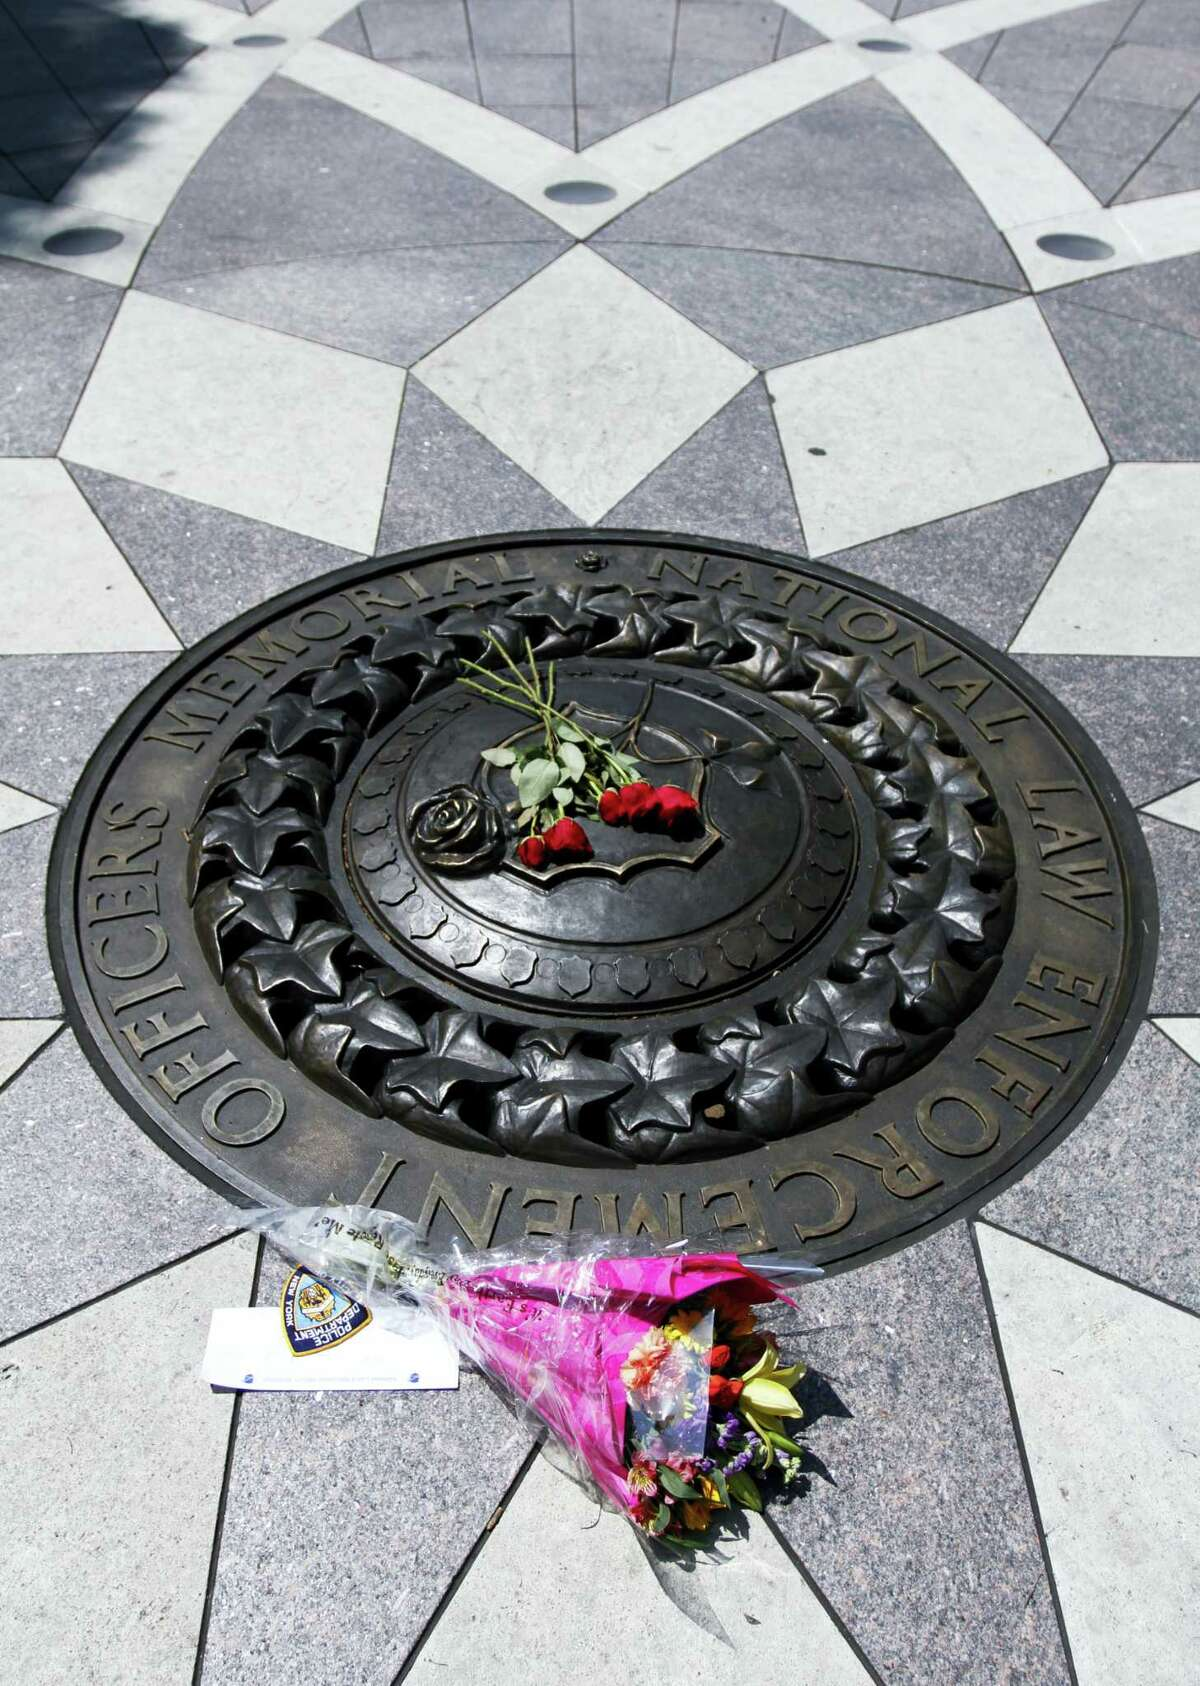 Five red roses and a bouquet of flowers with a note of support for the Dallas Police Department lies on the bronze medallion at the National Law Enforcement Officers Memorial in Washington, Friday, July 8, 2016. Five officers were killed in Dallas on Thursday.